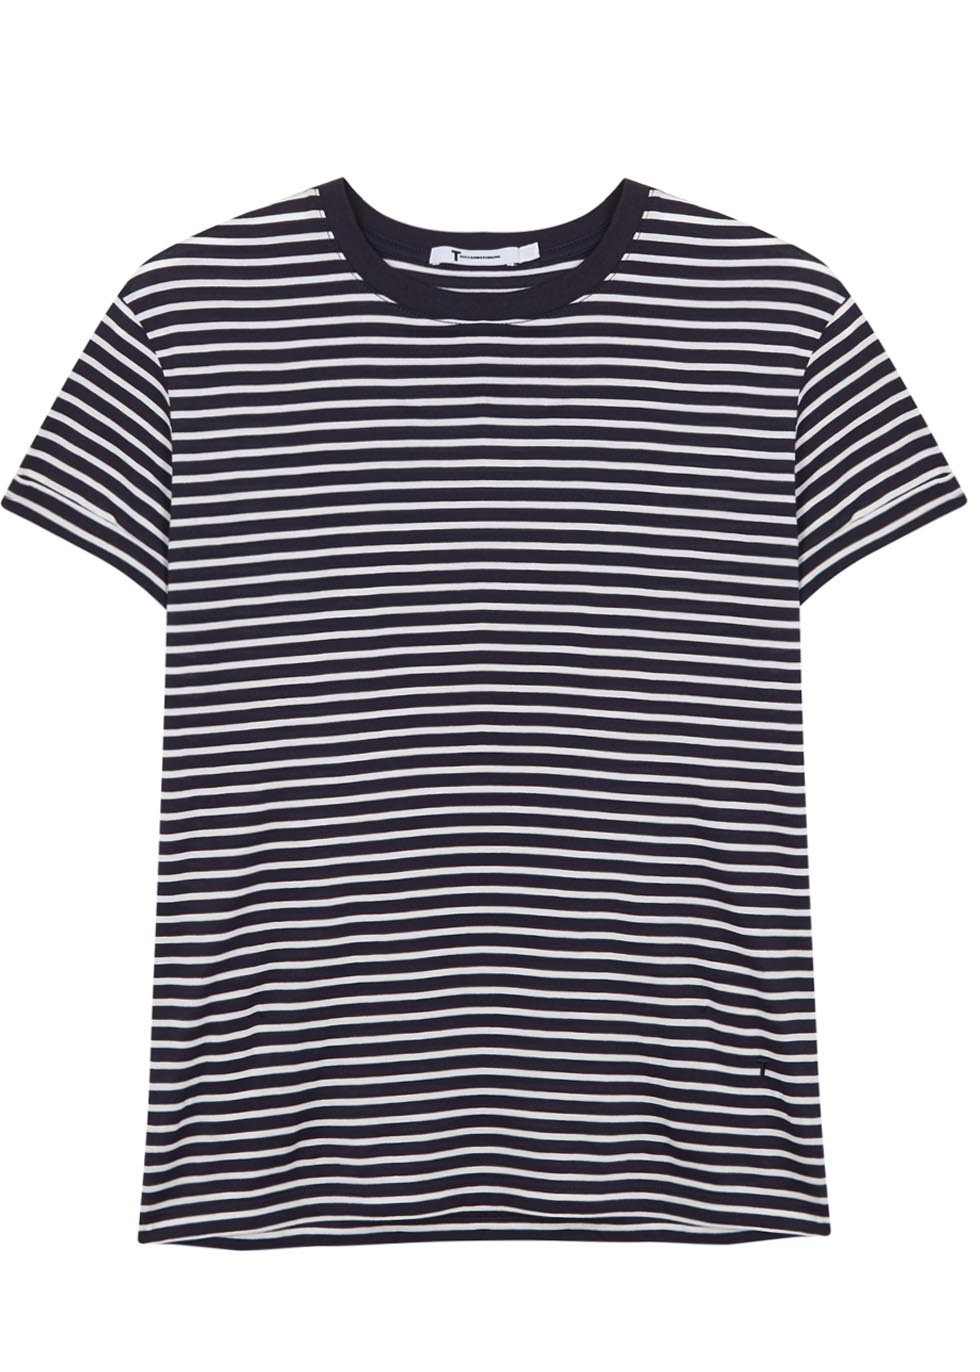 Striped Cotton T Shirt Size - pattern: horizontal stripes; style: t-shirt; secondary colour: white; predominant colour: navy; occasions: casual, holiday; length: standard; fibres: cotton - 100%; fit: loose; neckline: crew; sleeve length: short sleeve; sleeve style: standard; pattern type: fabric; texture group: jersey - stretchy/drapey; multicoloured: multicoloured; season: s/s 2016; wardrobe: basic